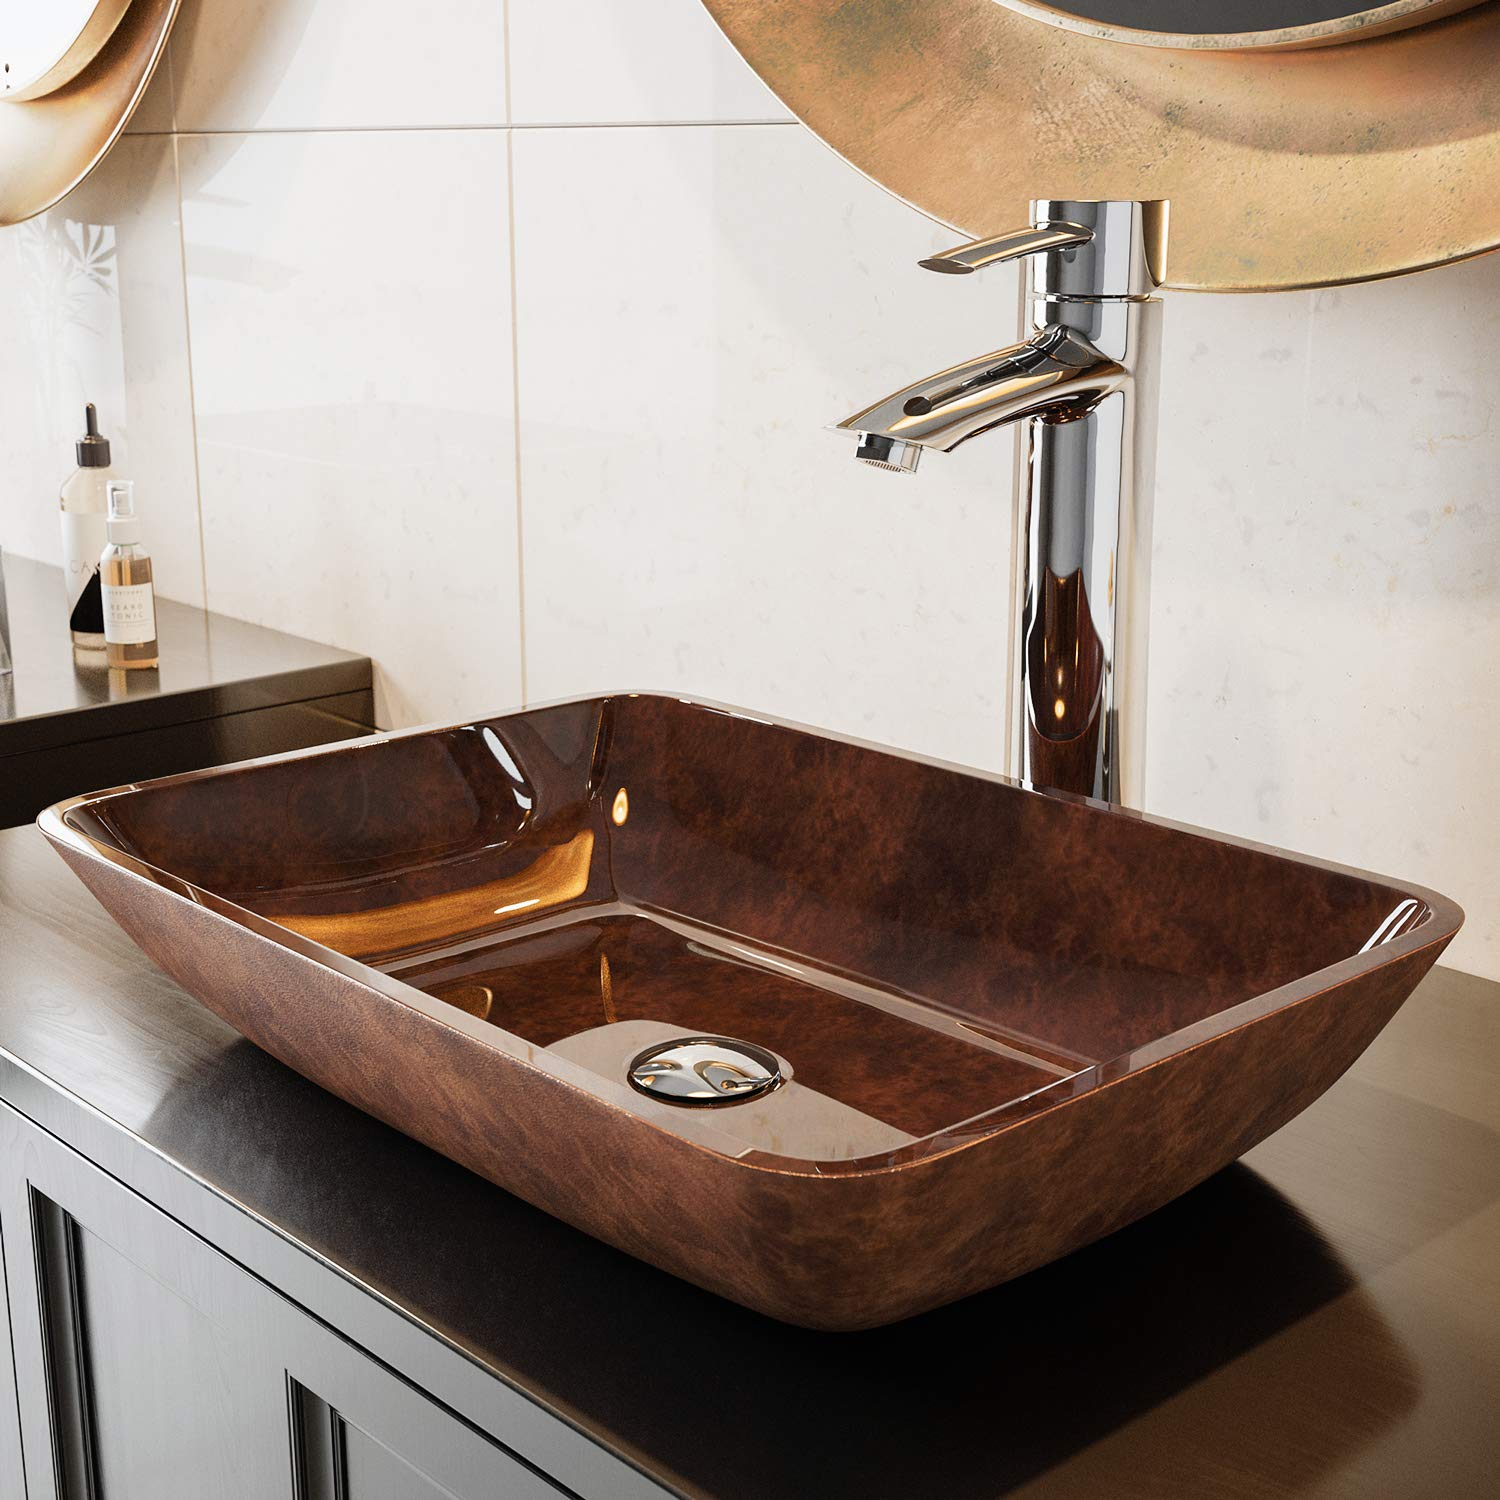 Vigo vg07089 18 rectangular russet glass vessel bathroom sink amazon com